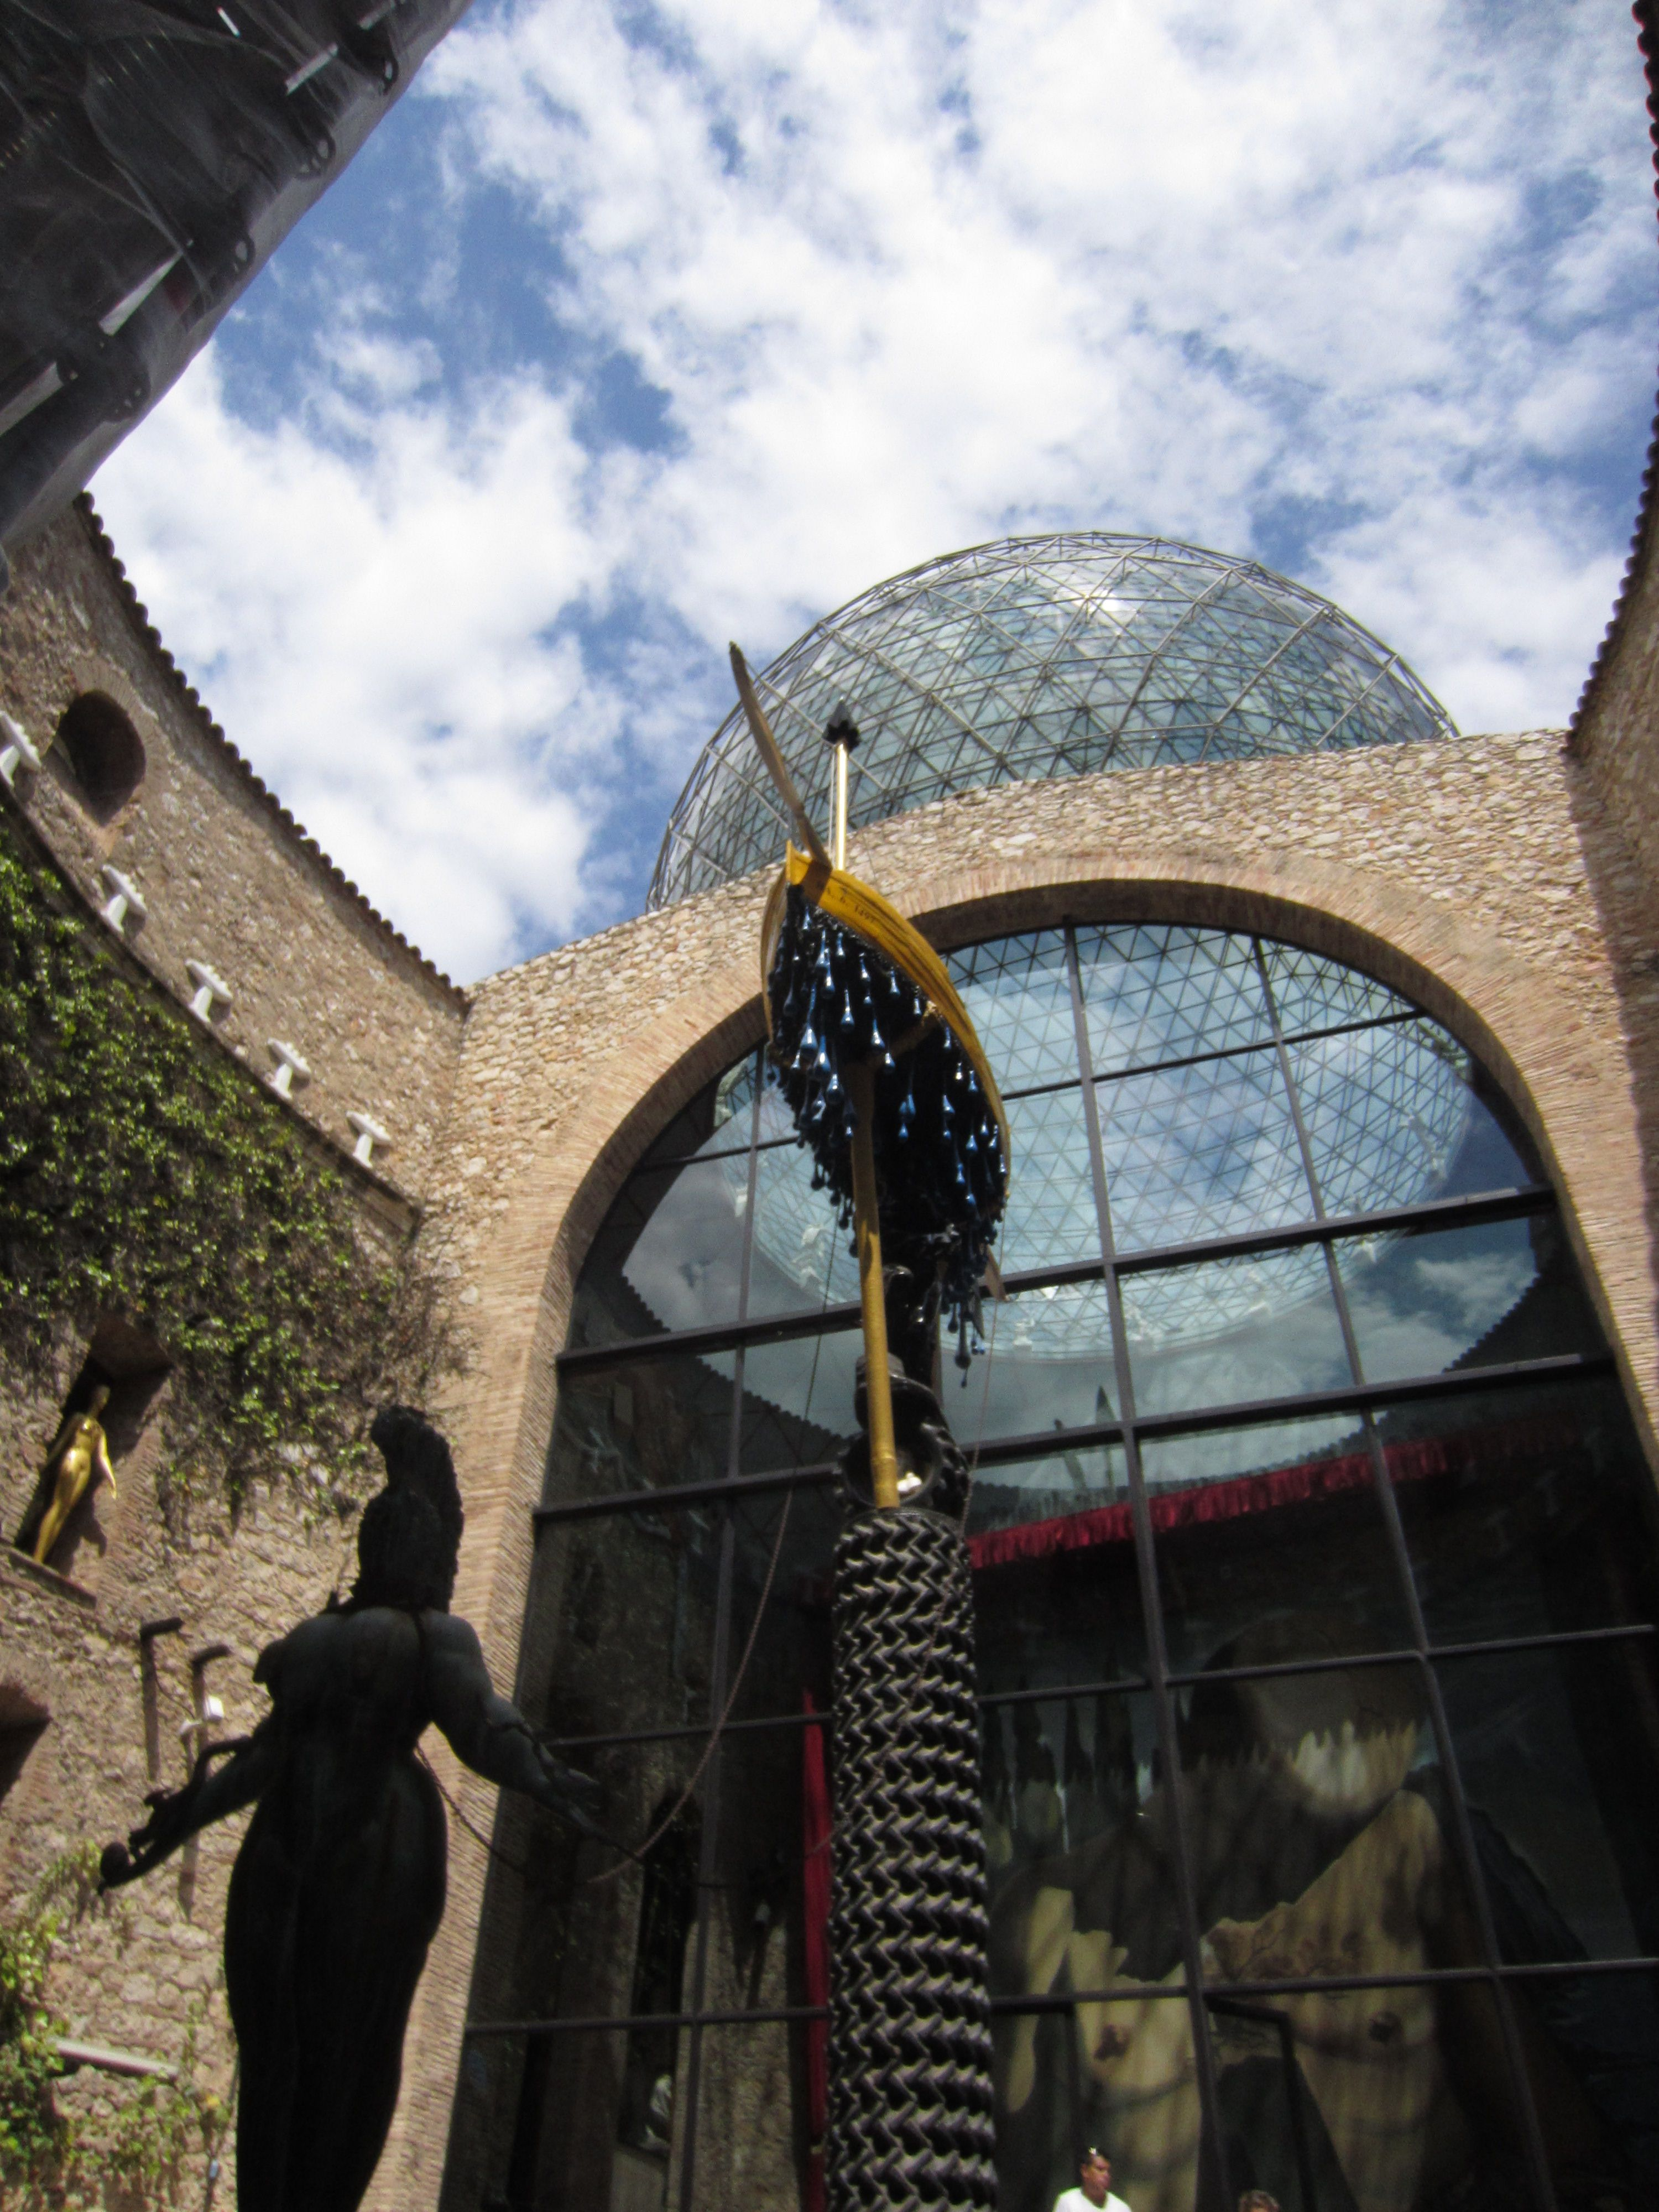 The Dali Museum and Theatre in Figueres, Spain.